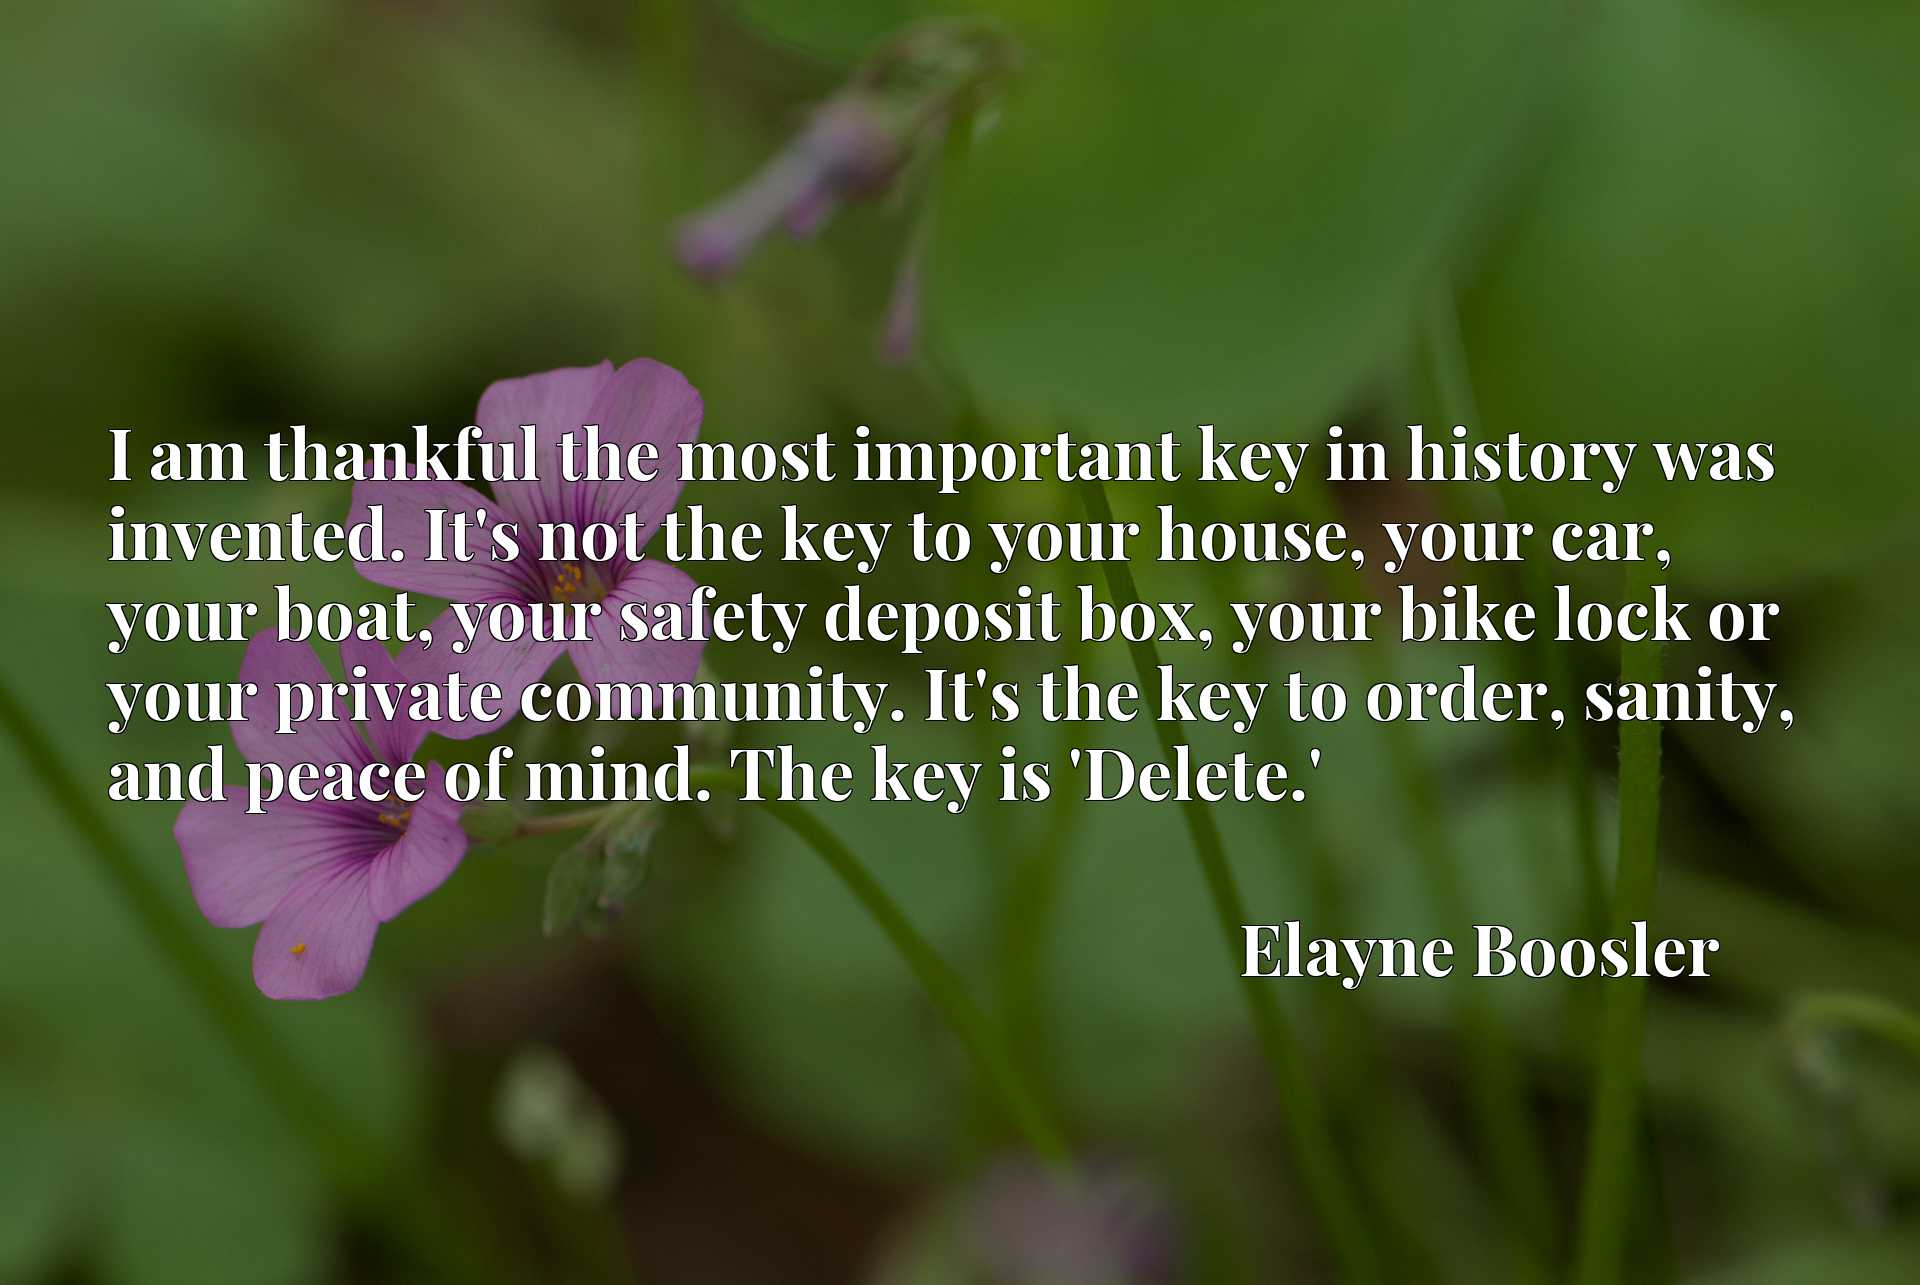 I am thankful the most important key in history was invented. It's not the key to your house, your car, your boat, your safety deposit box, your bike lock or your private community. It's the key to order, sanity, and peace of mind. The key is 'Delete.'